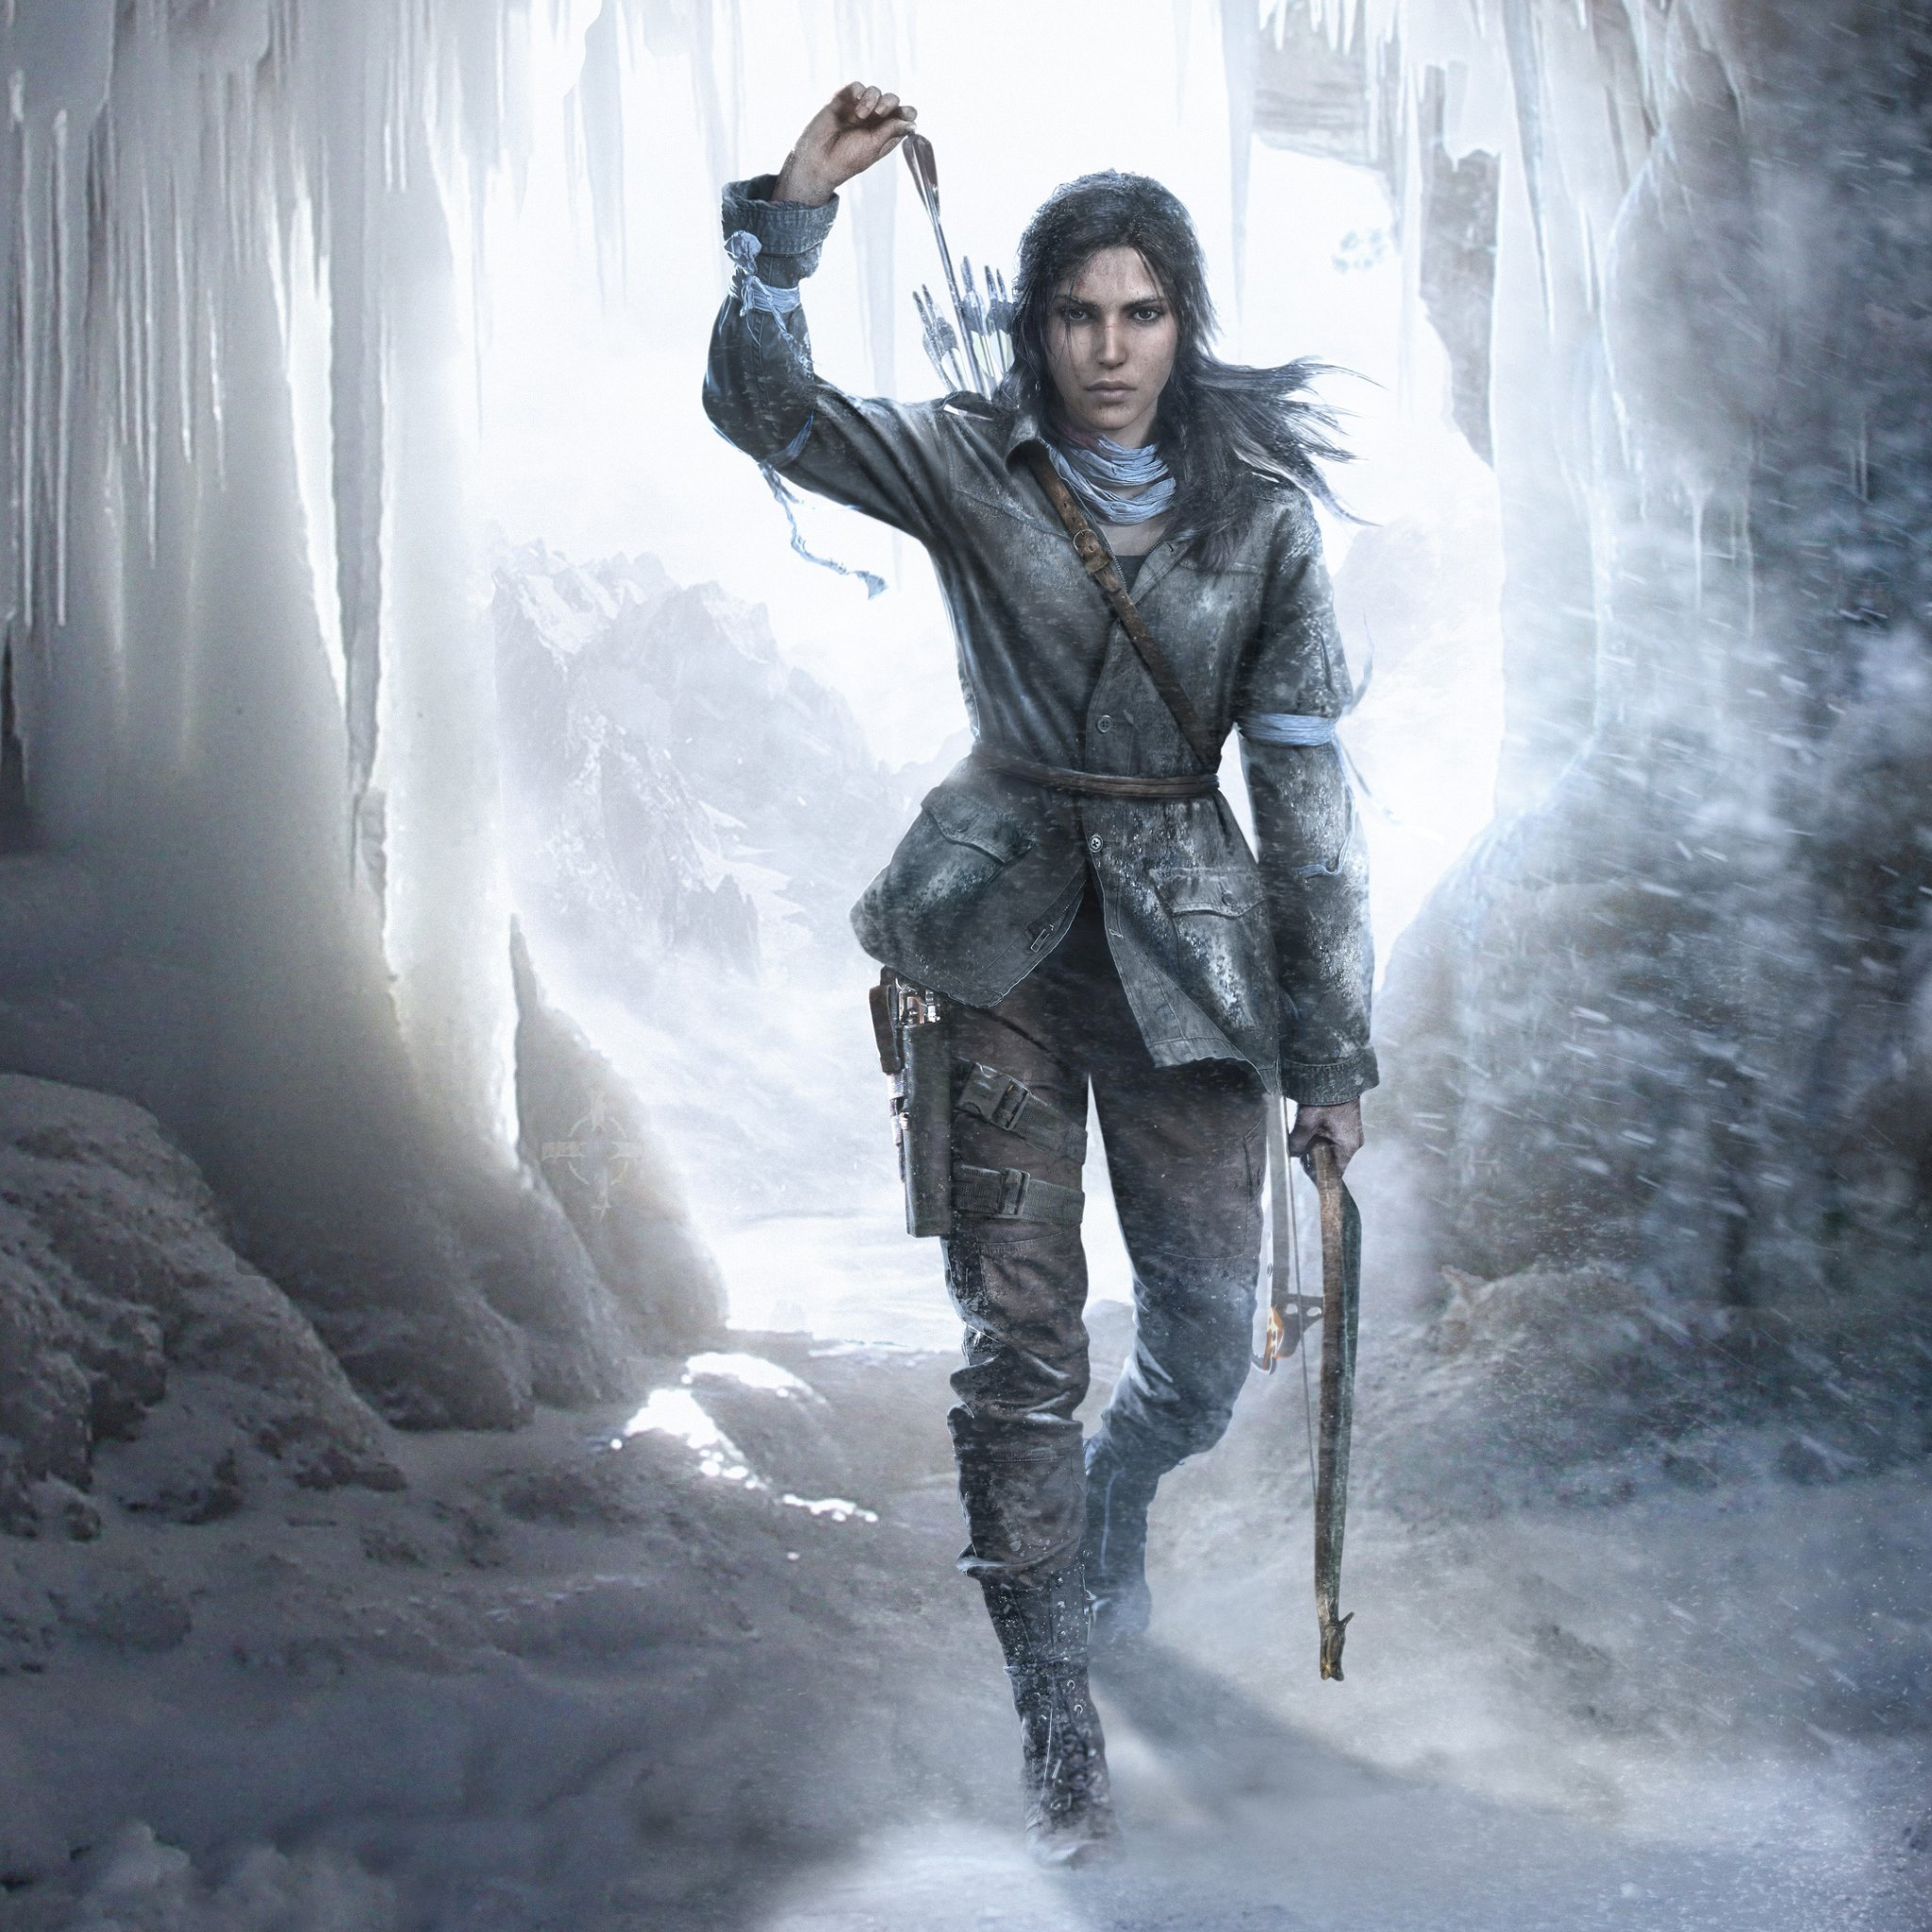 Tomb Rider Wallpaper: 2015 Rise Of The Tomb Raider Wallpapers (99 Wallpapers